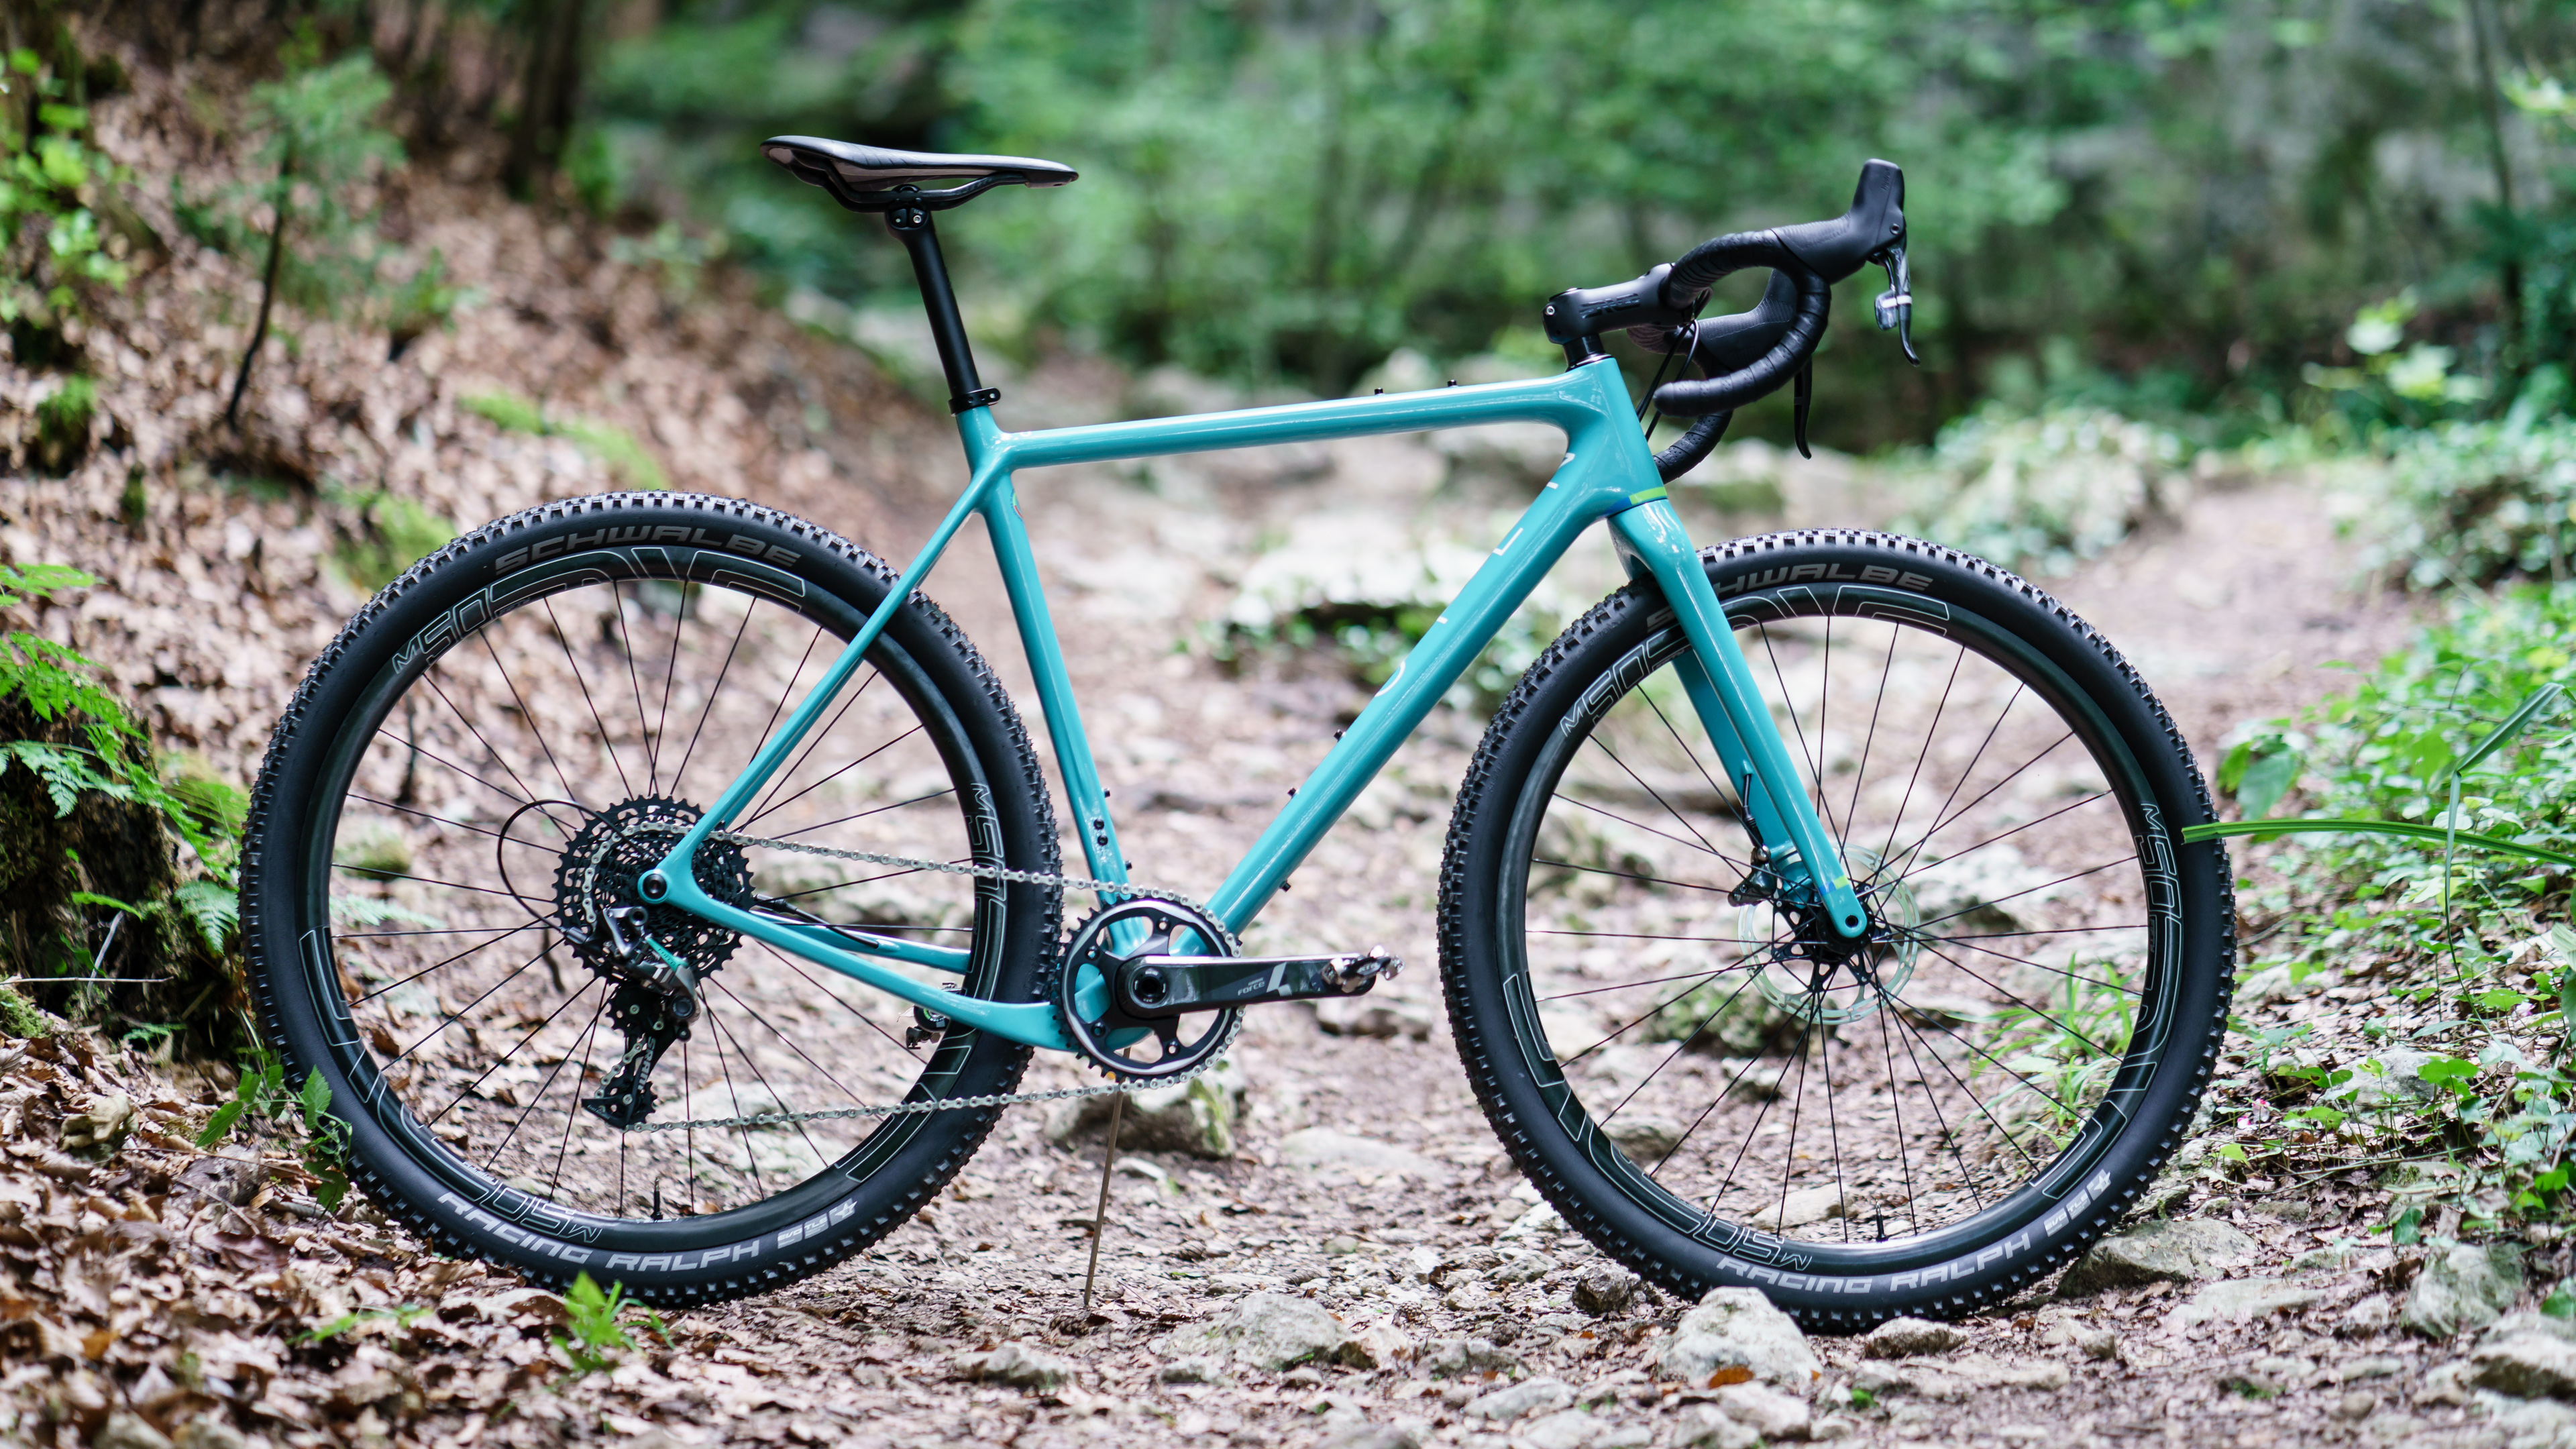 Yeti-inspired OPEN U.P. frameset released